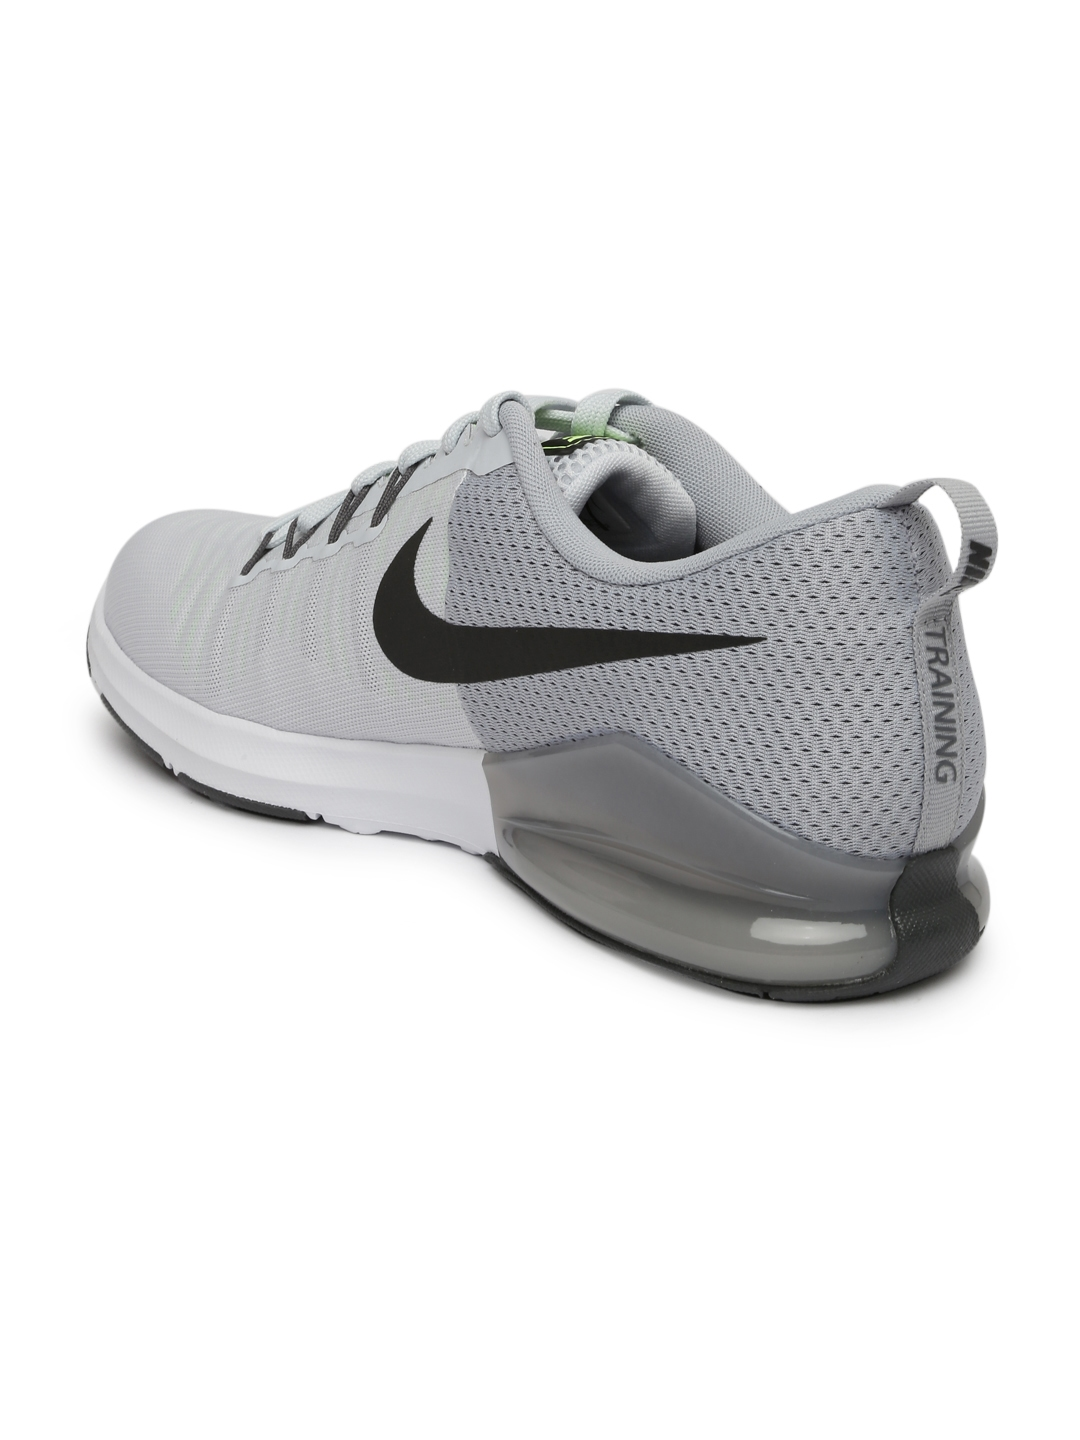 a87f6ccc4ccf Buy Nike Men White   Grey Zoom Train Action Training Shoes - Sports ...